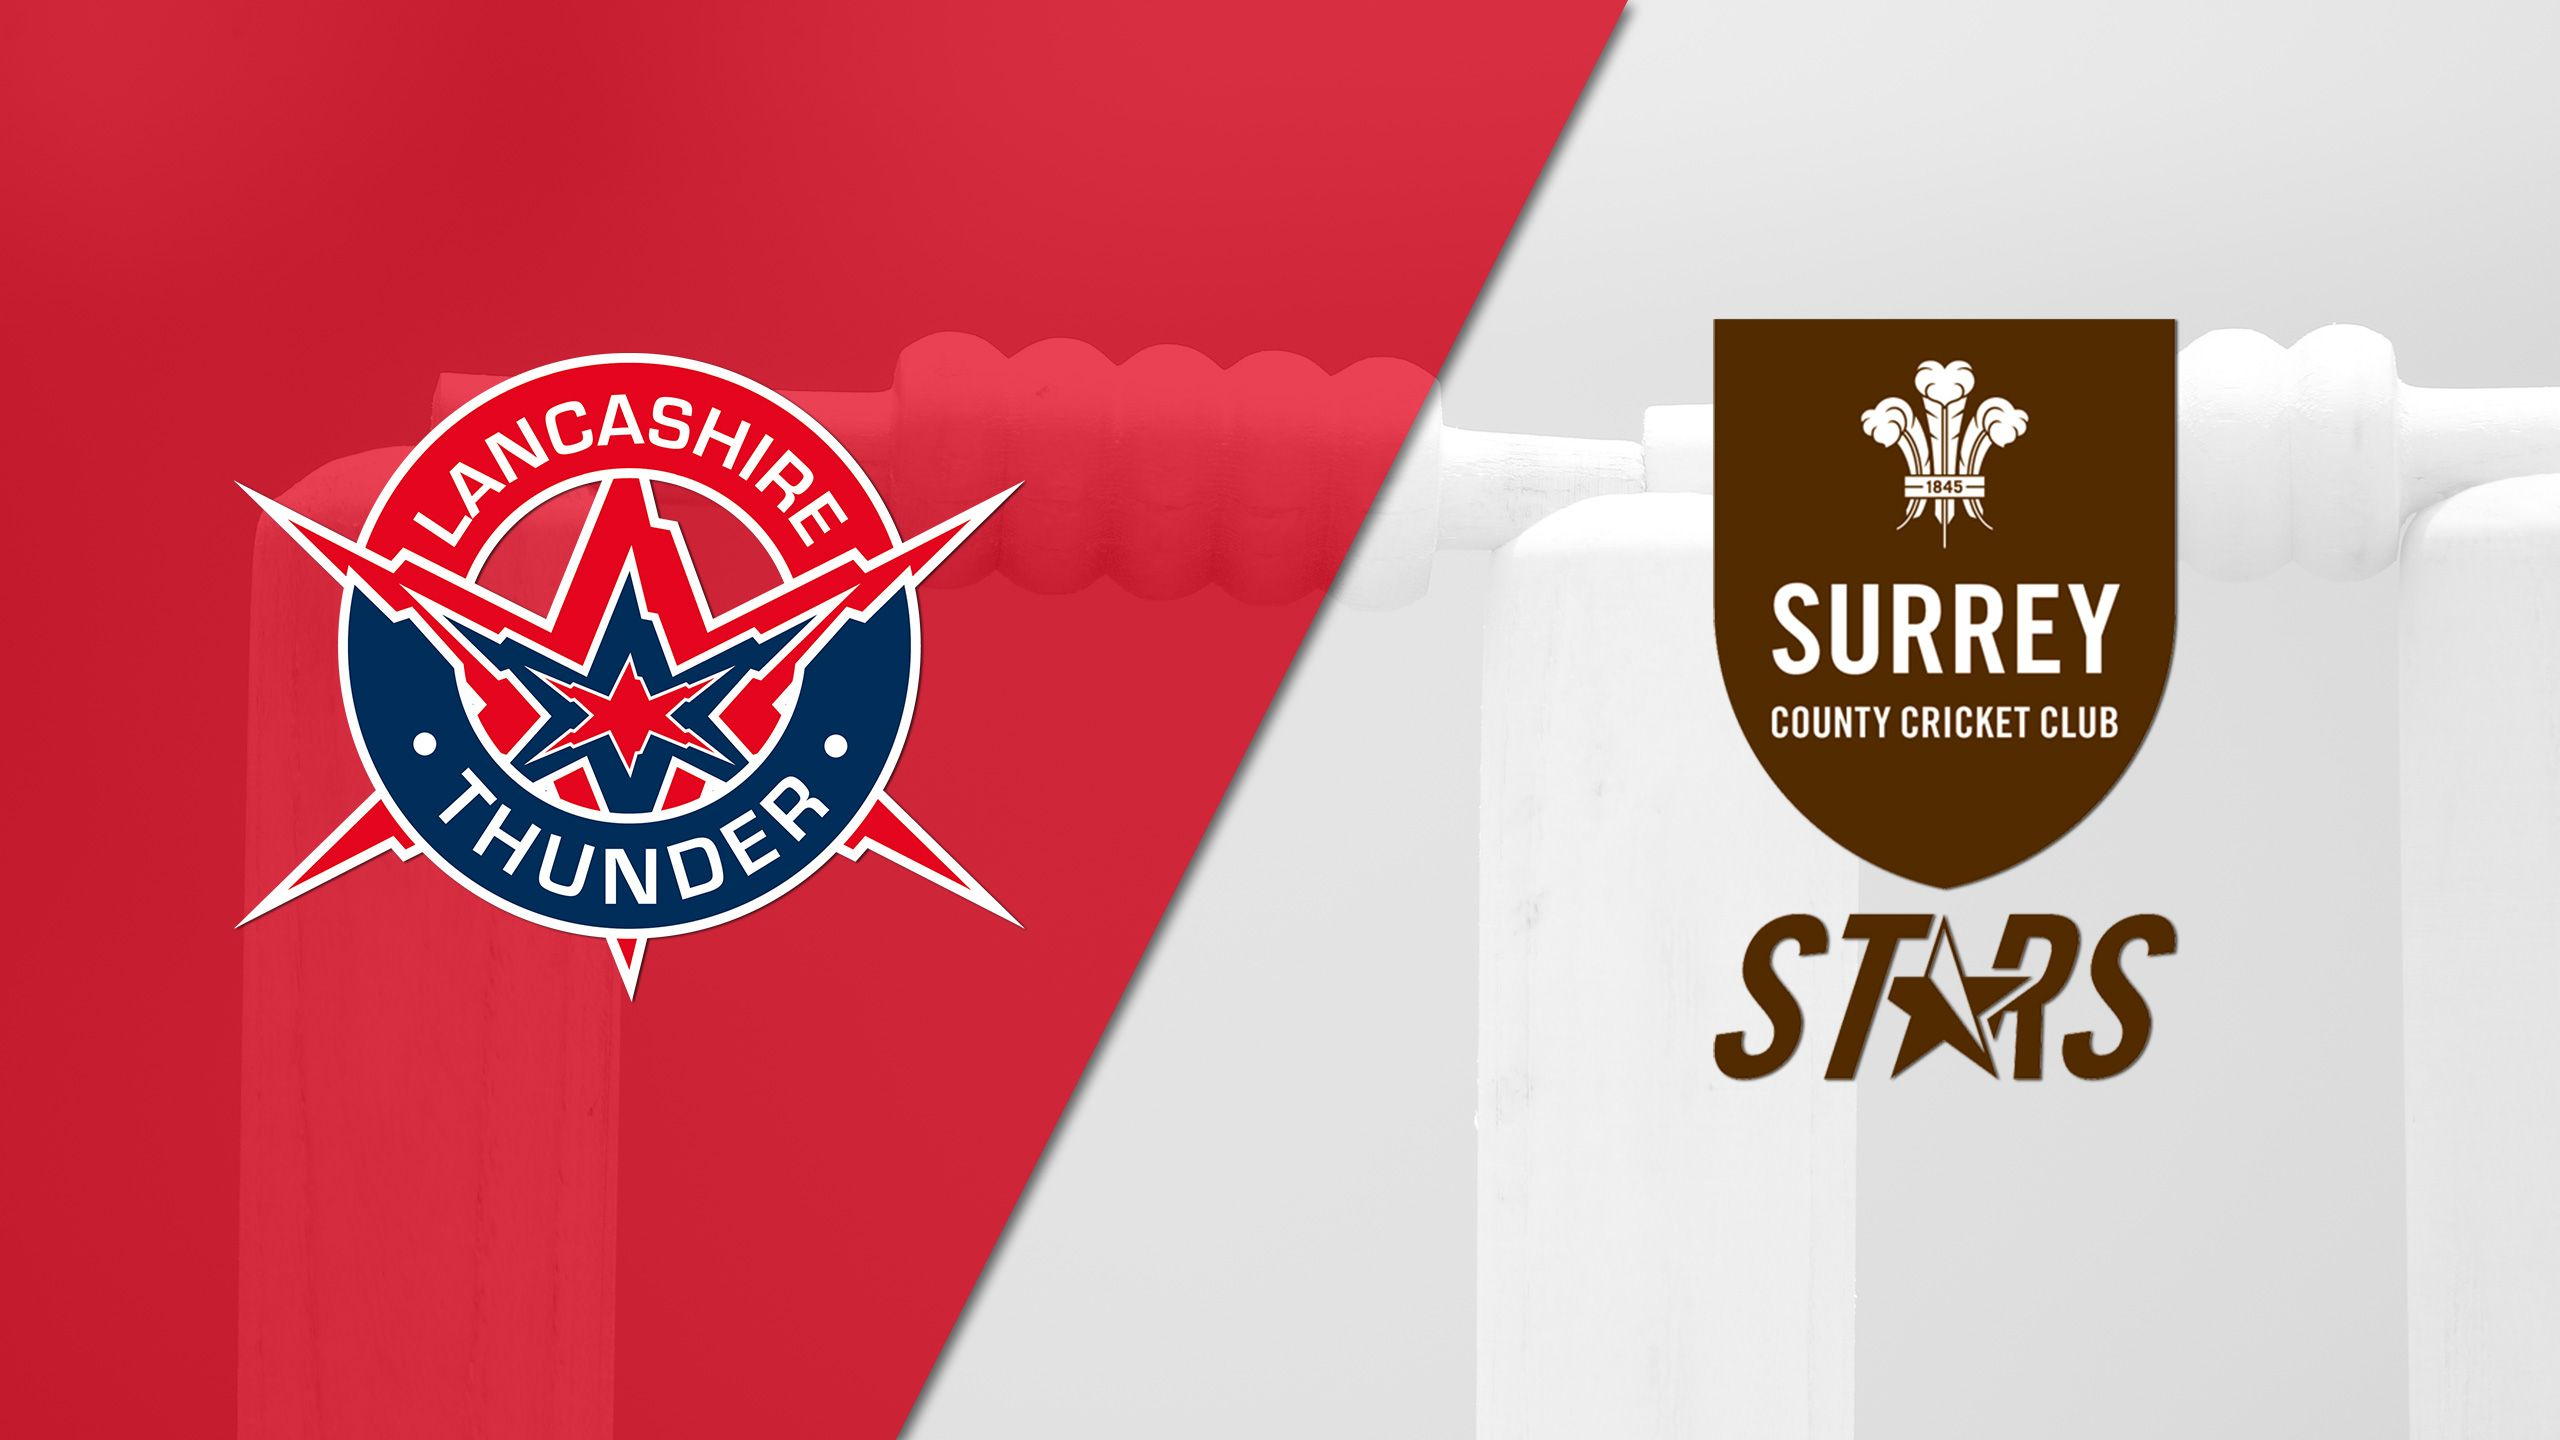 Lancashire Thunder vs. Surrey Stars (Kia Super League)